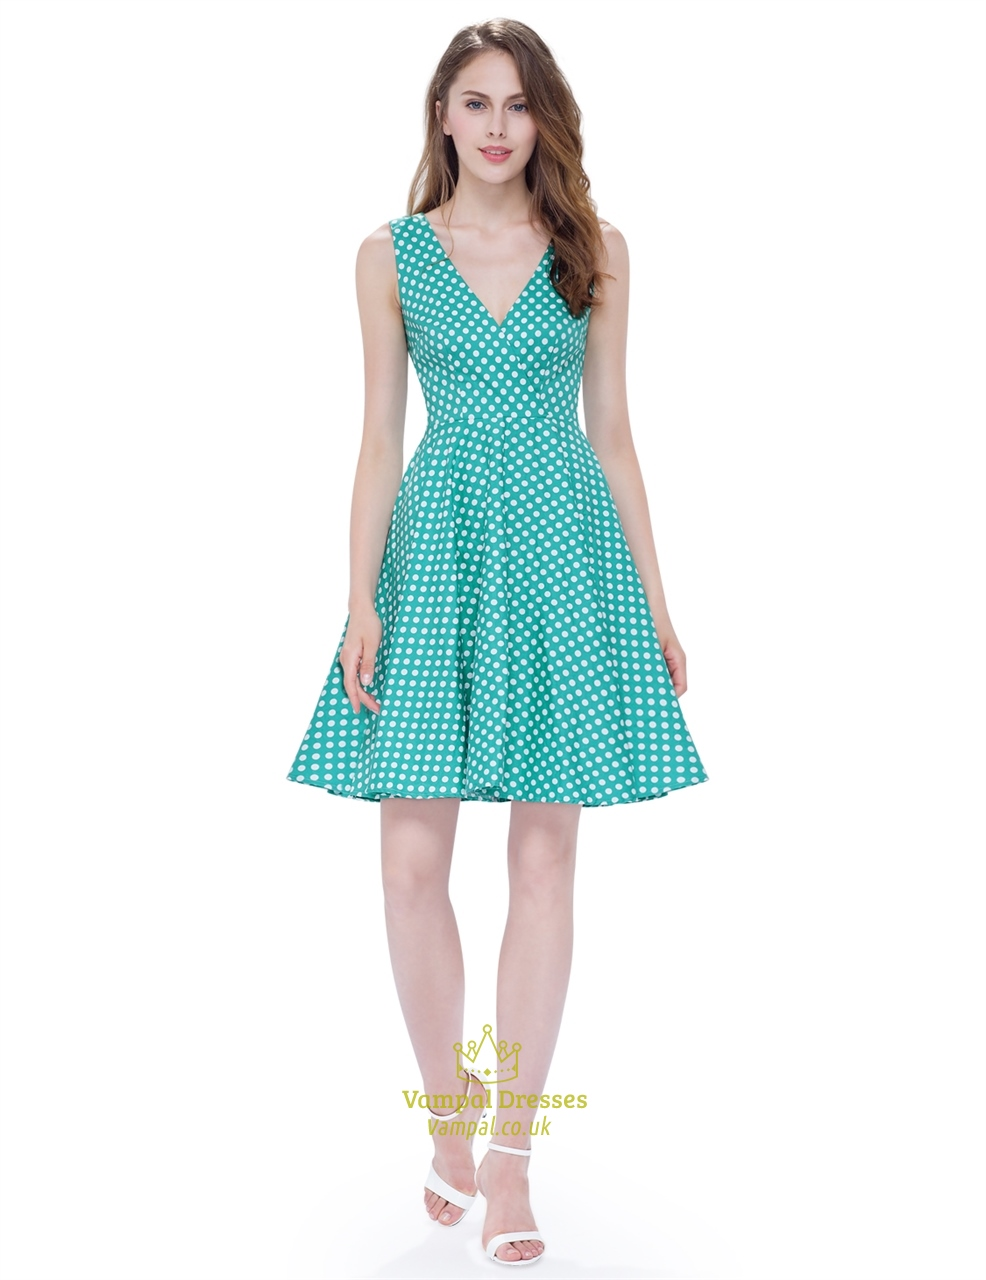 fde86d6fff Mint Green And White Polka Dot V Neck Sleeveless Fit And Flare Dress SKU  -AP093